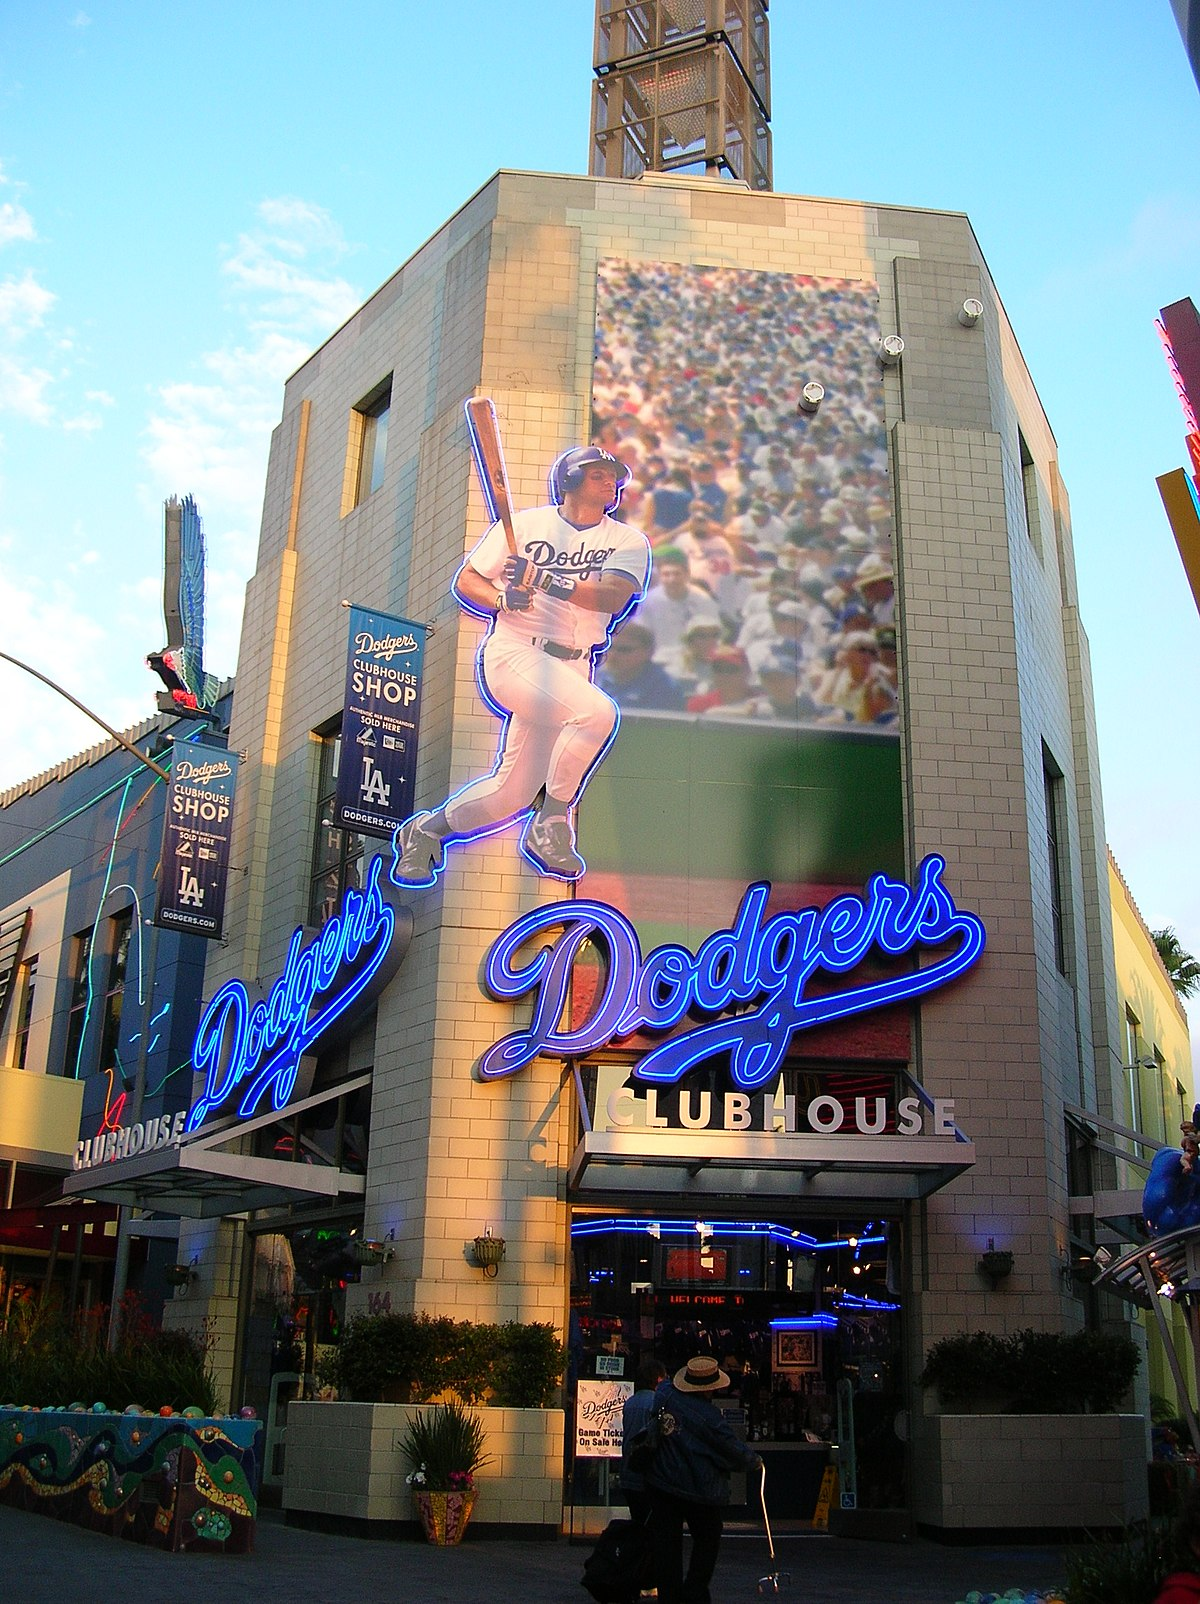 File:Dodgers Clubhouse, Universal CityWalk Hollywood JPG